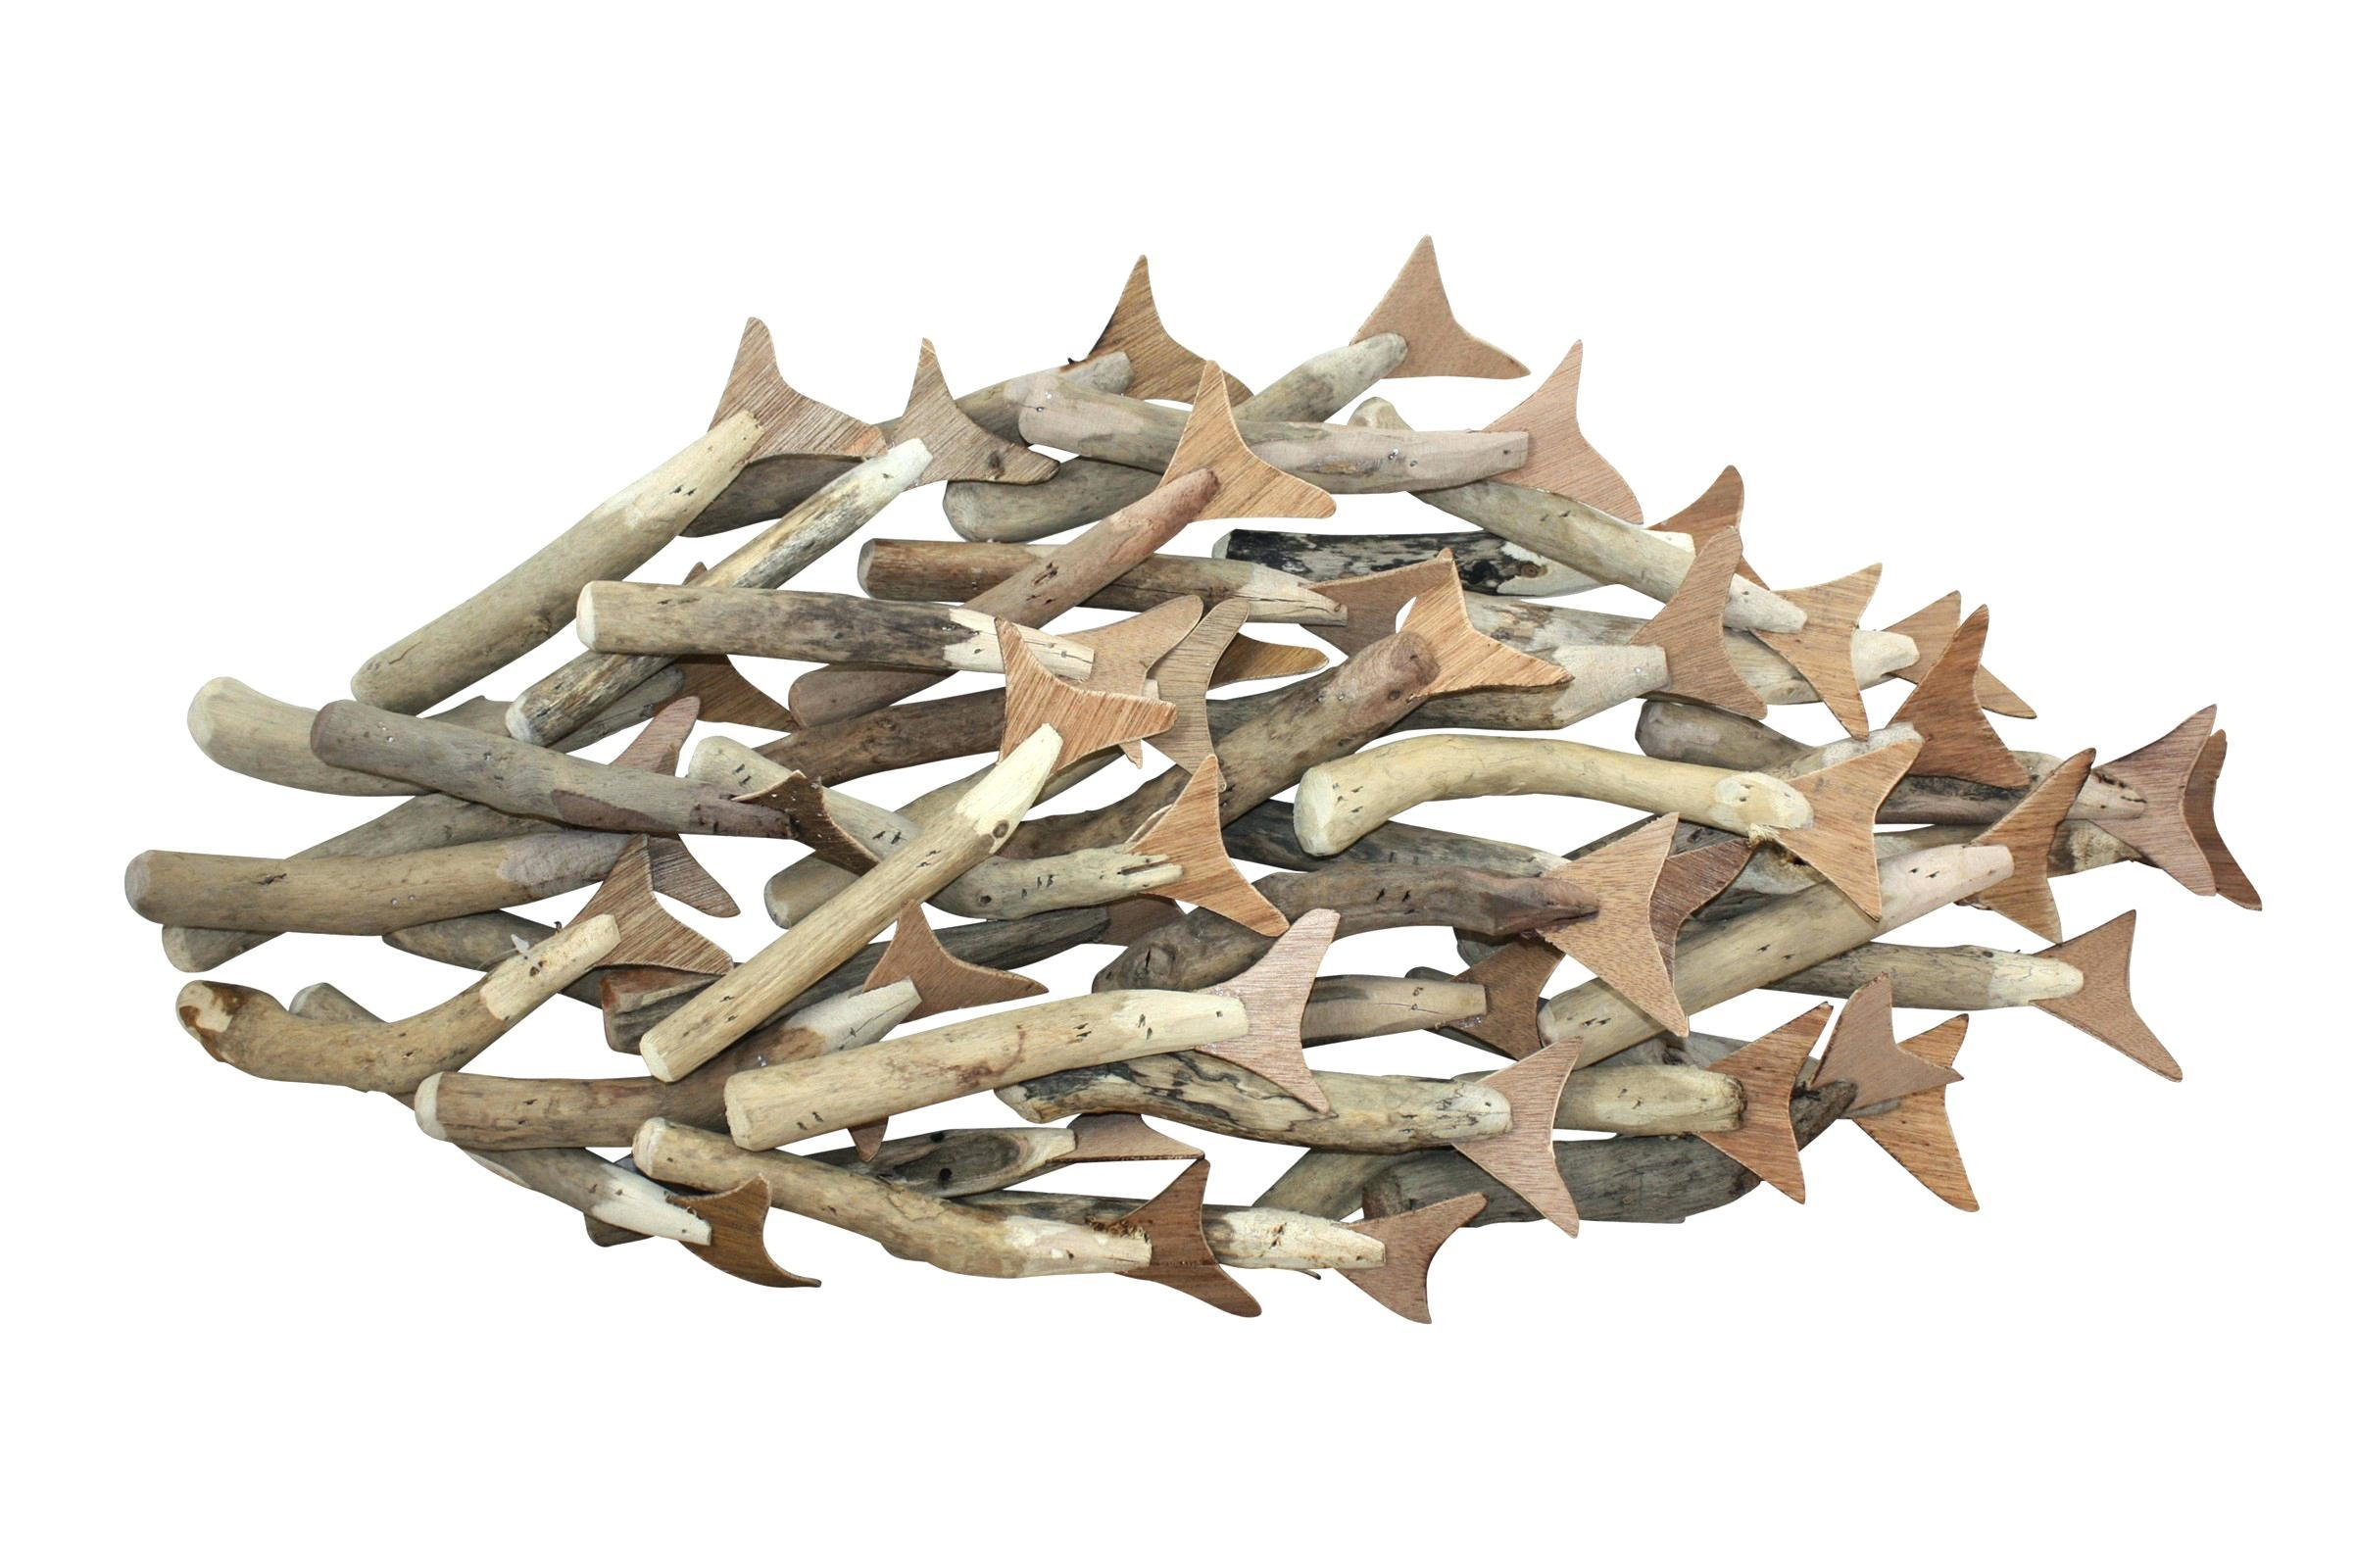 Wall Ideas : Fish Wall Art Metal Fish Art Decor Large Wooden Fish Pertaining To Metal School Of Fish Wall Art (Image 16 of 20)